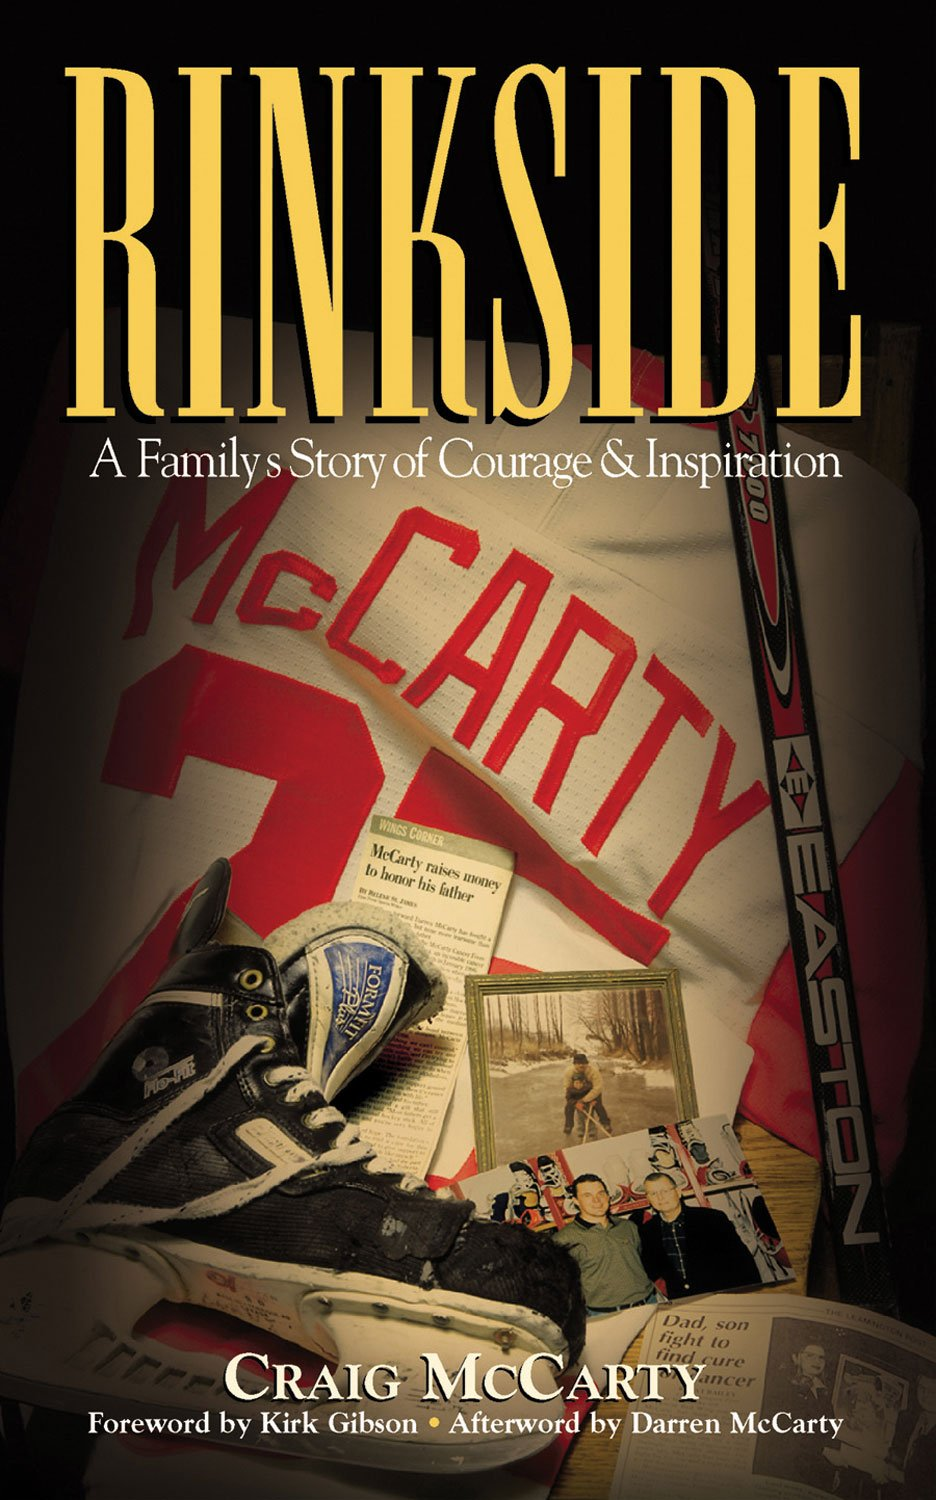 Rinkside: A Family's Story of Courage & Inspiration